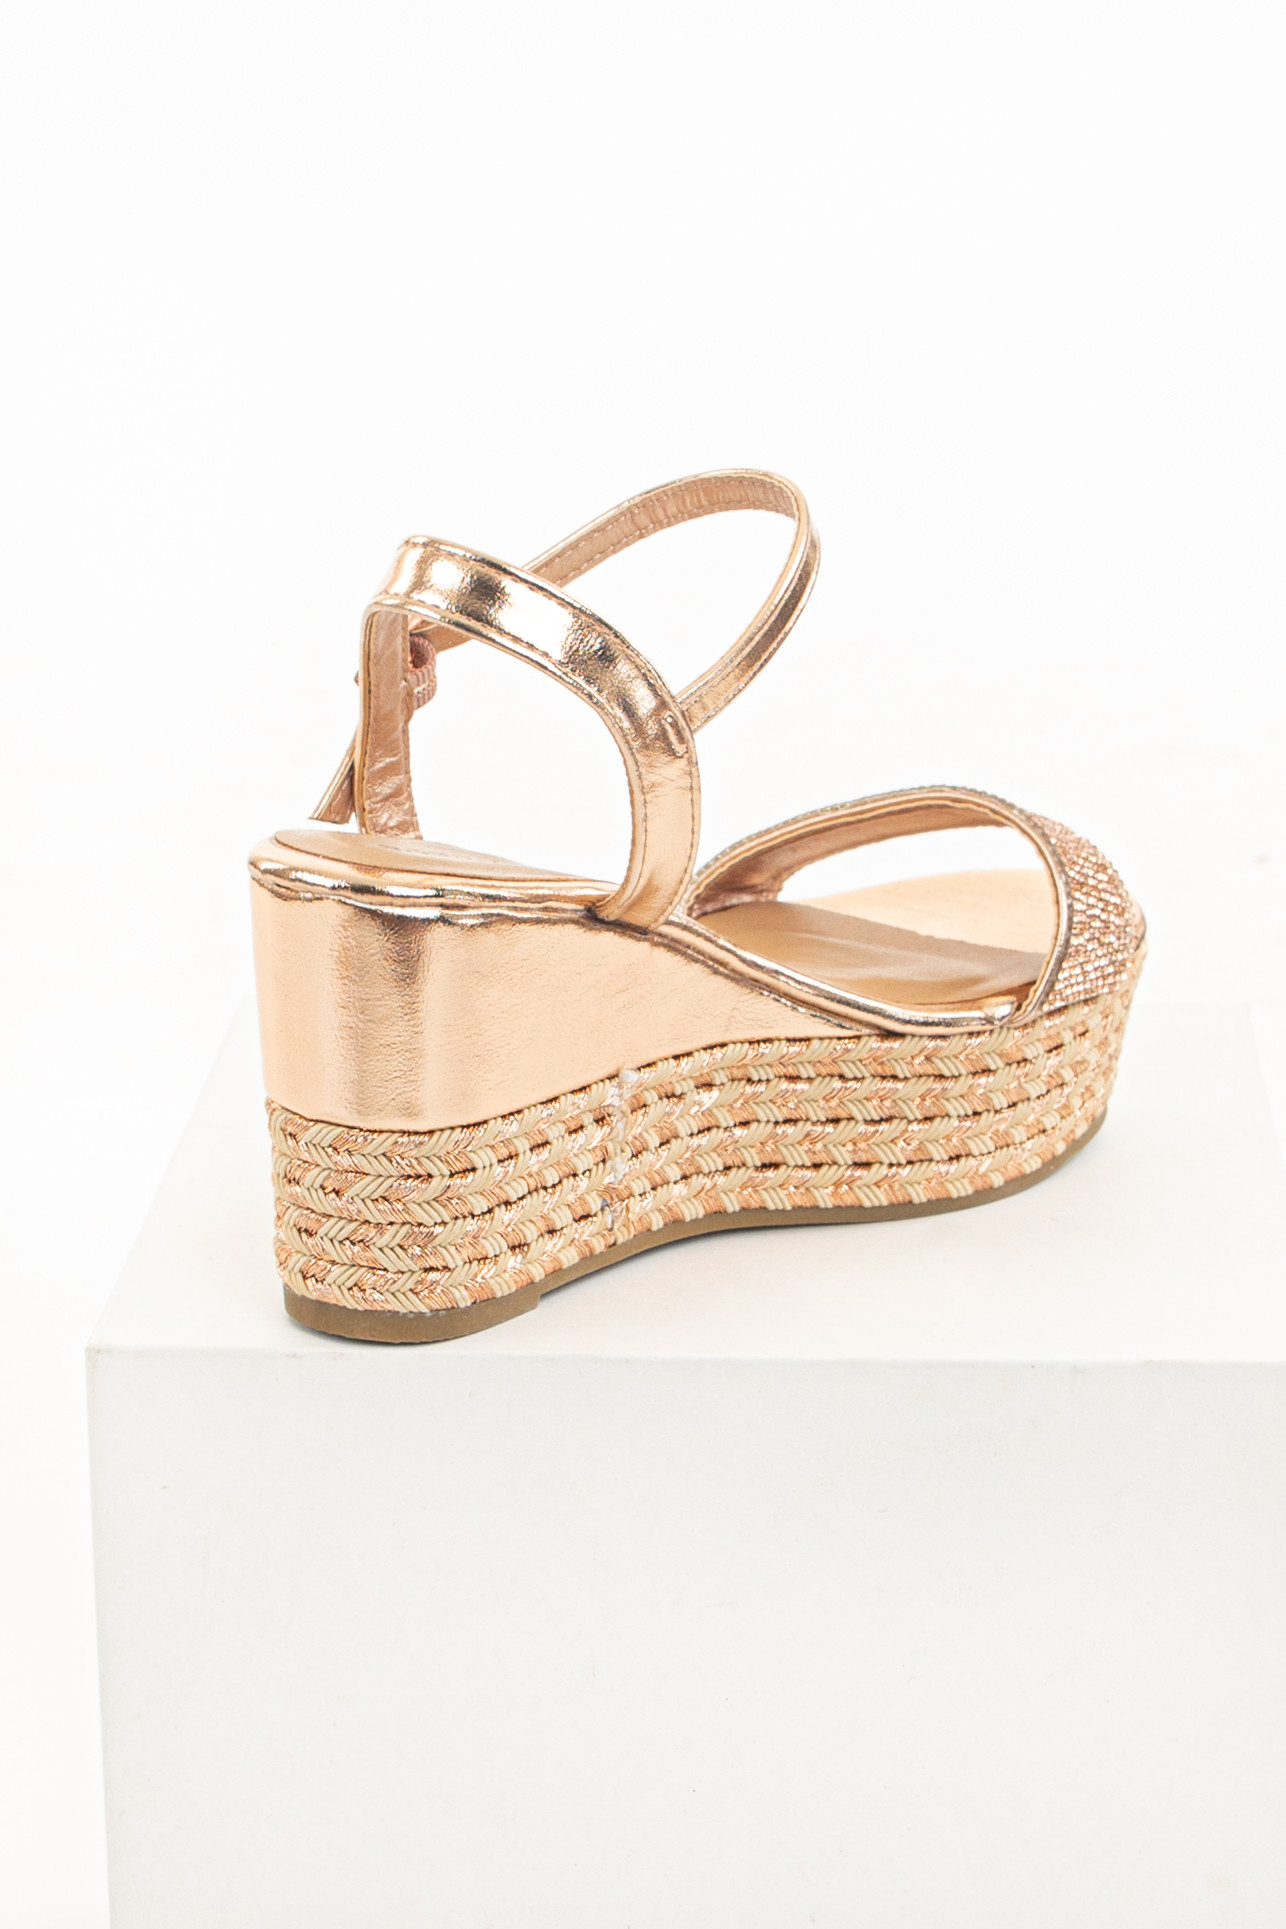 Rose Gold Wedge Espadrille Sandals with Rhinestone Details